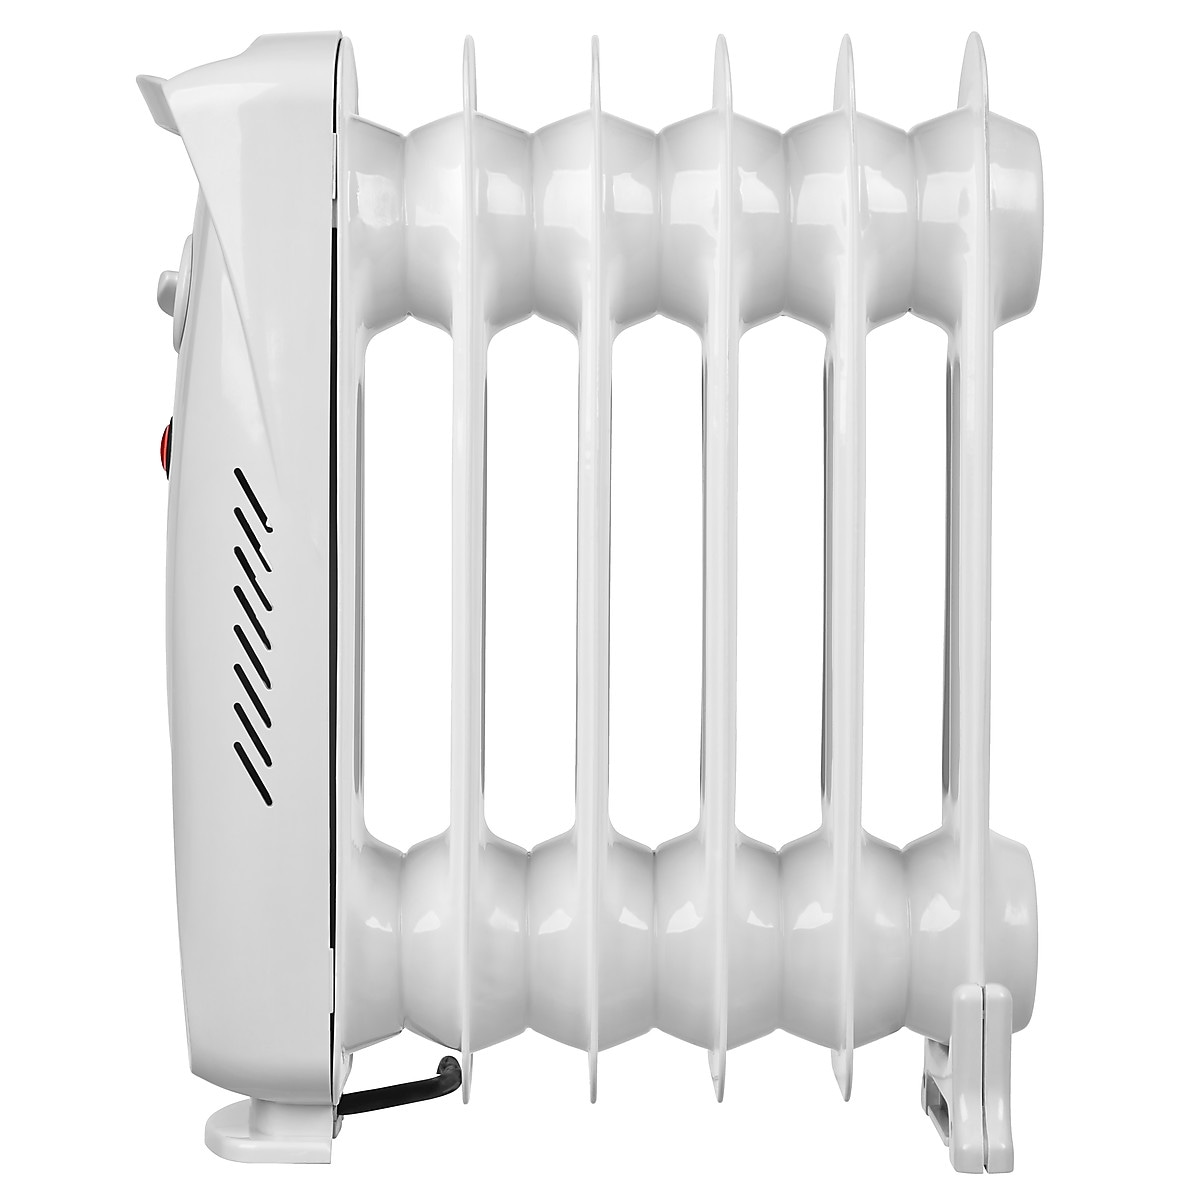 500W Oil-Filled Radiator